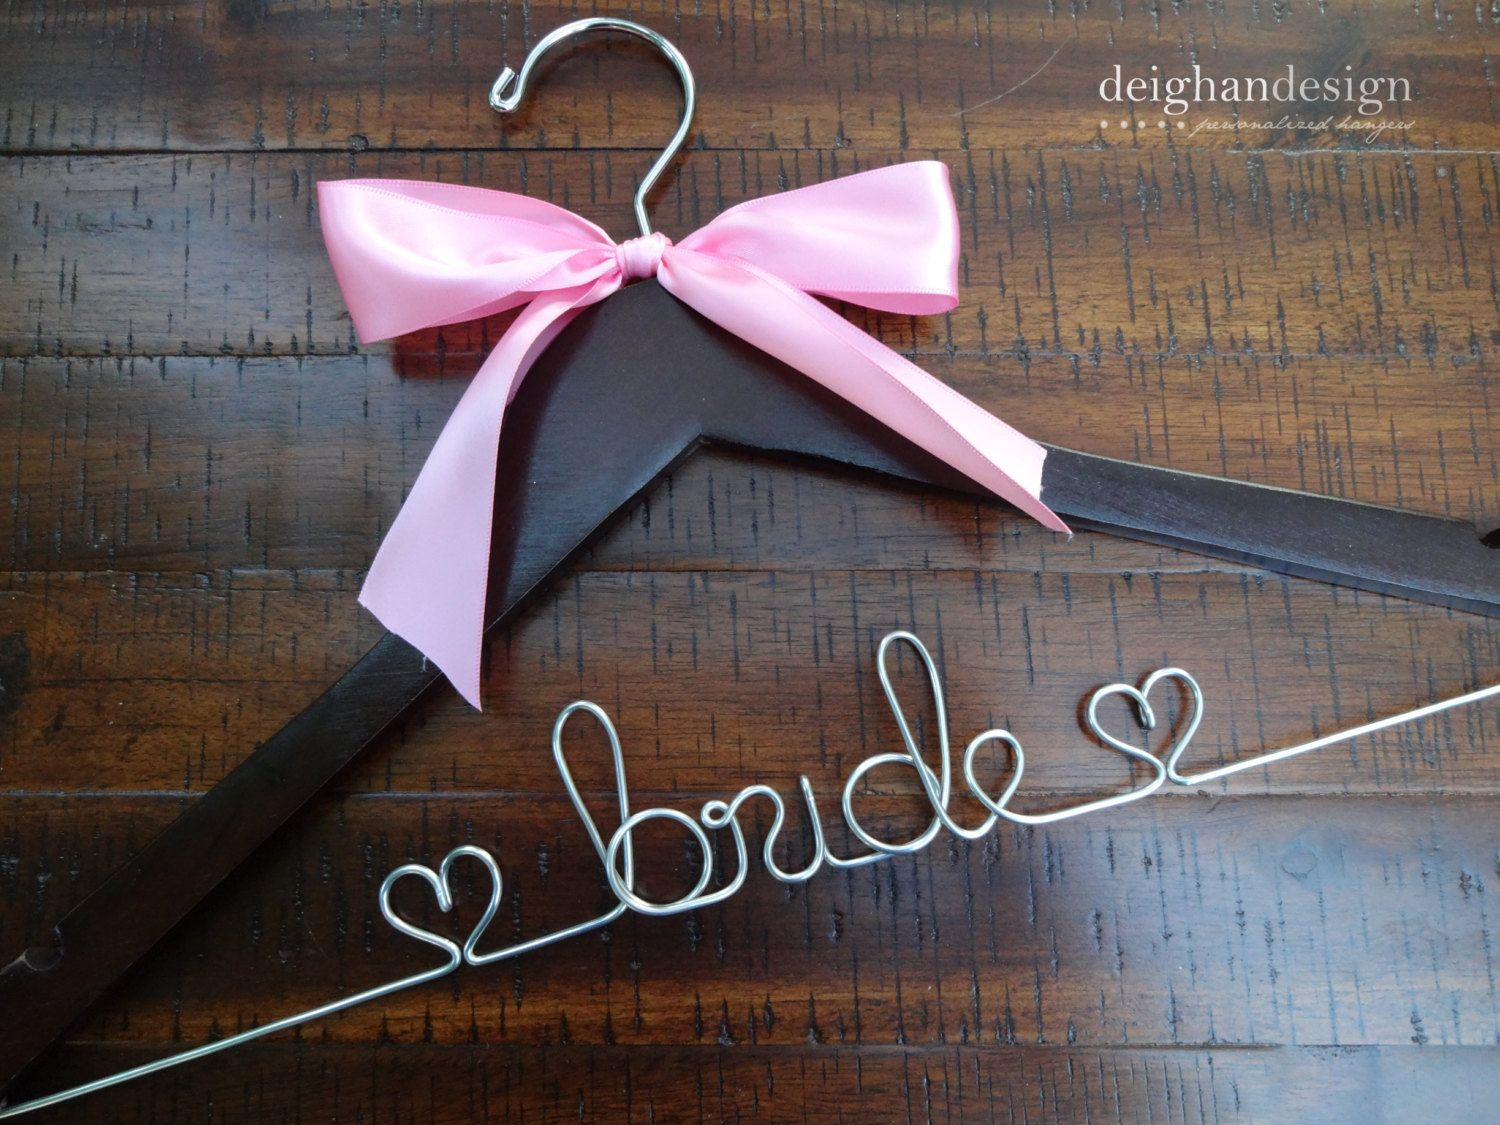 Sale wedding dress hanger with satin bow bride by deighandesign